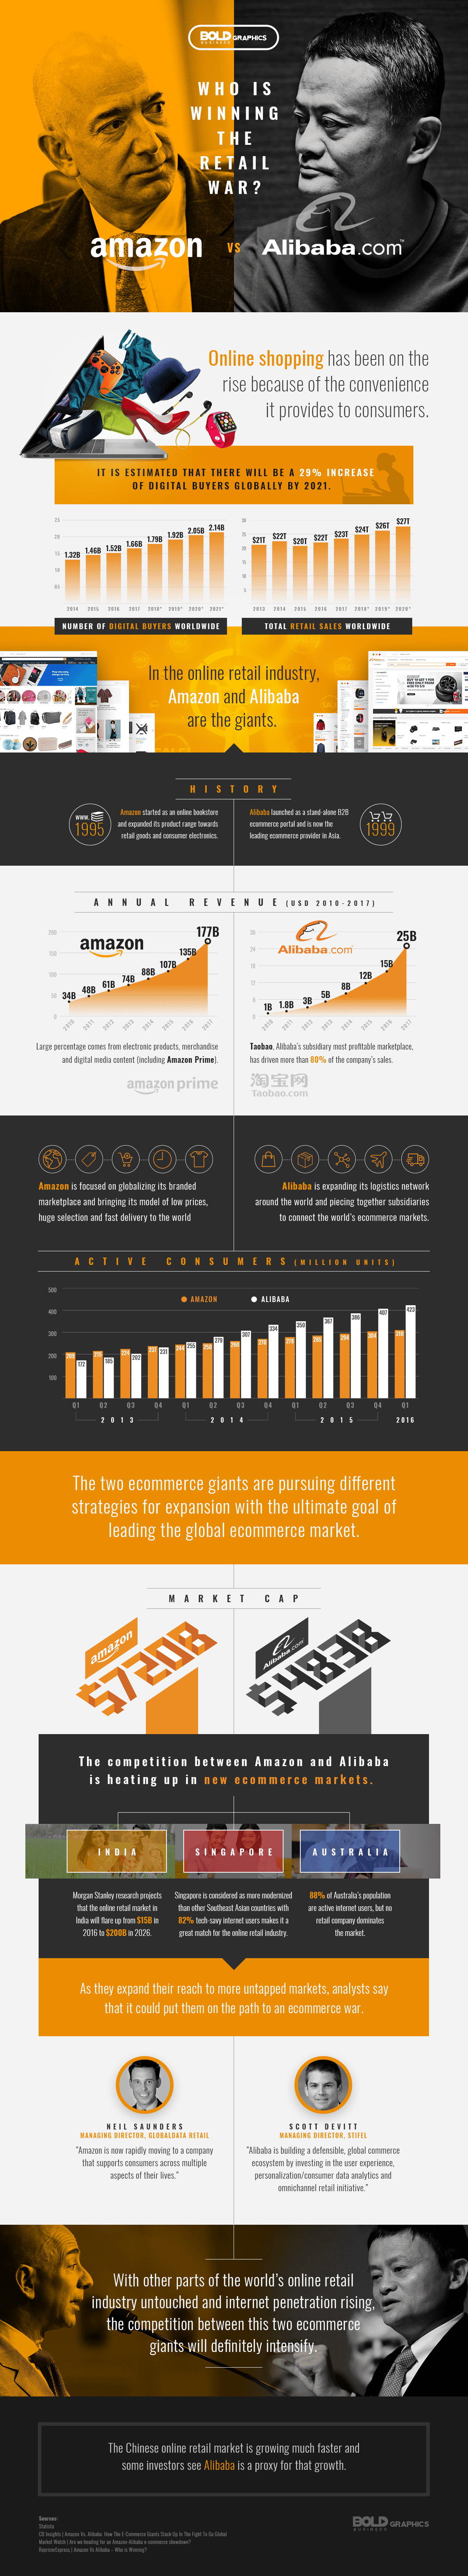 retail war between amazon vs alibaba infographic